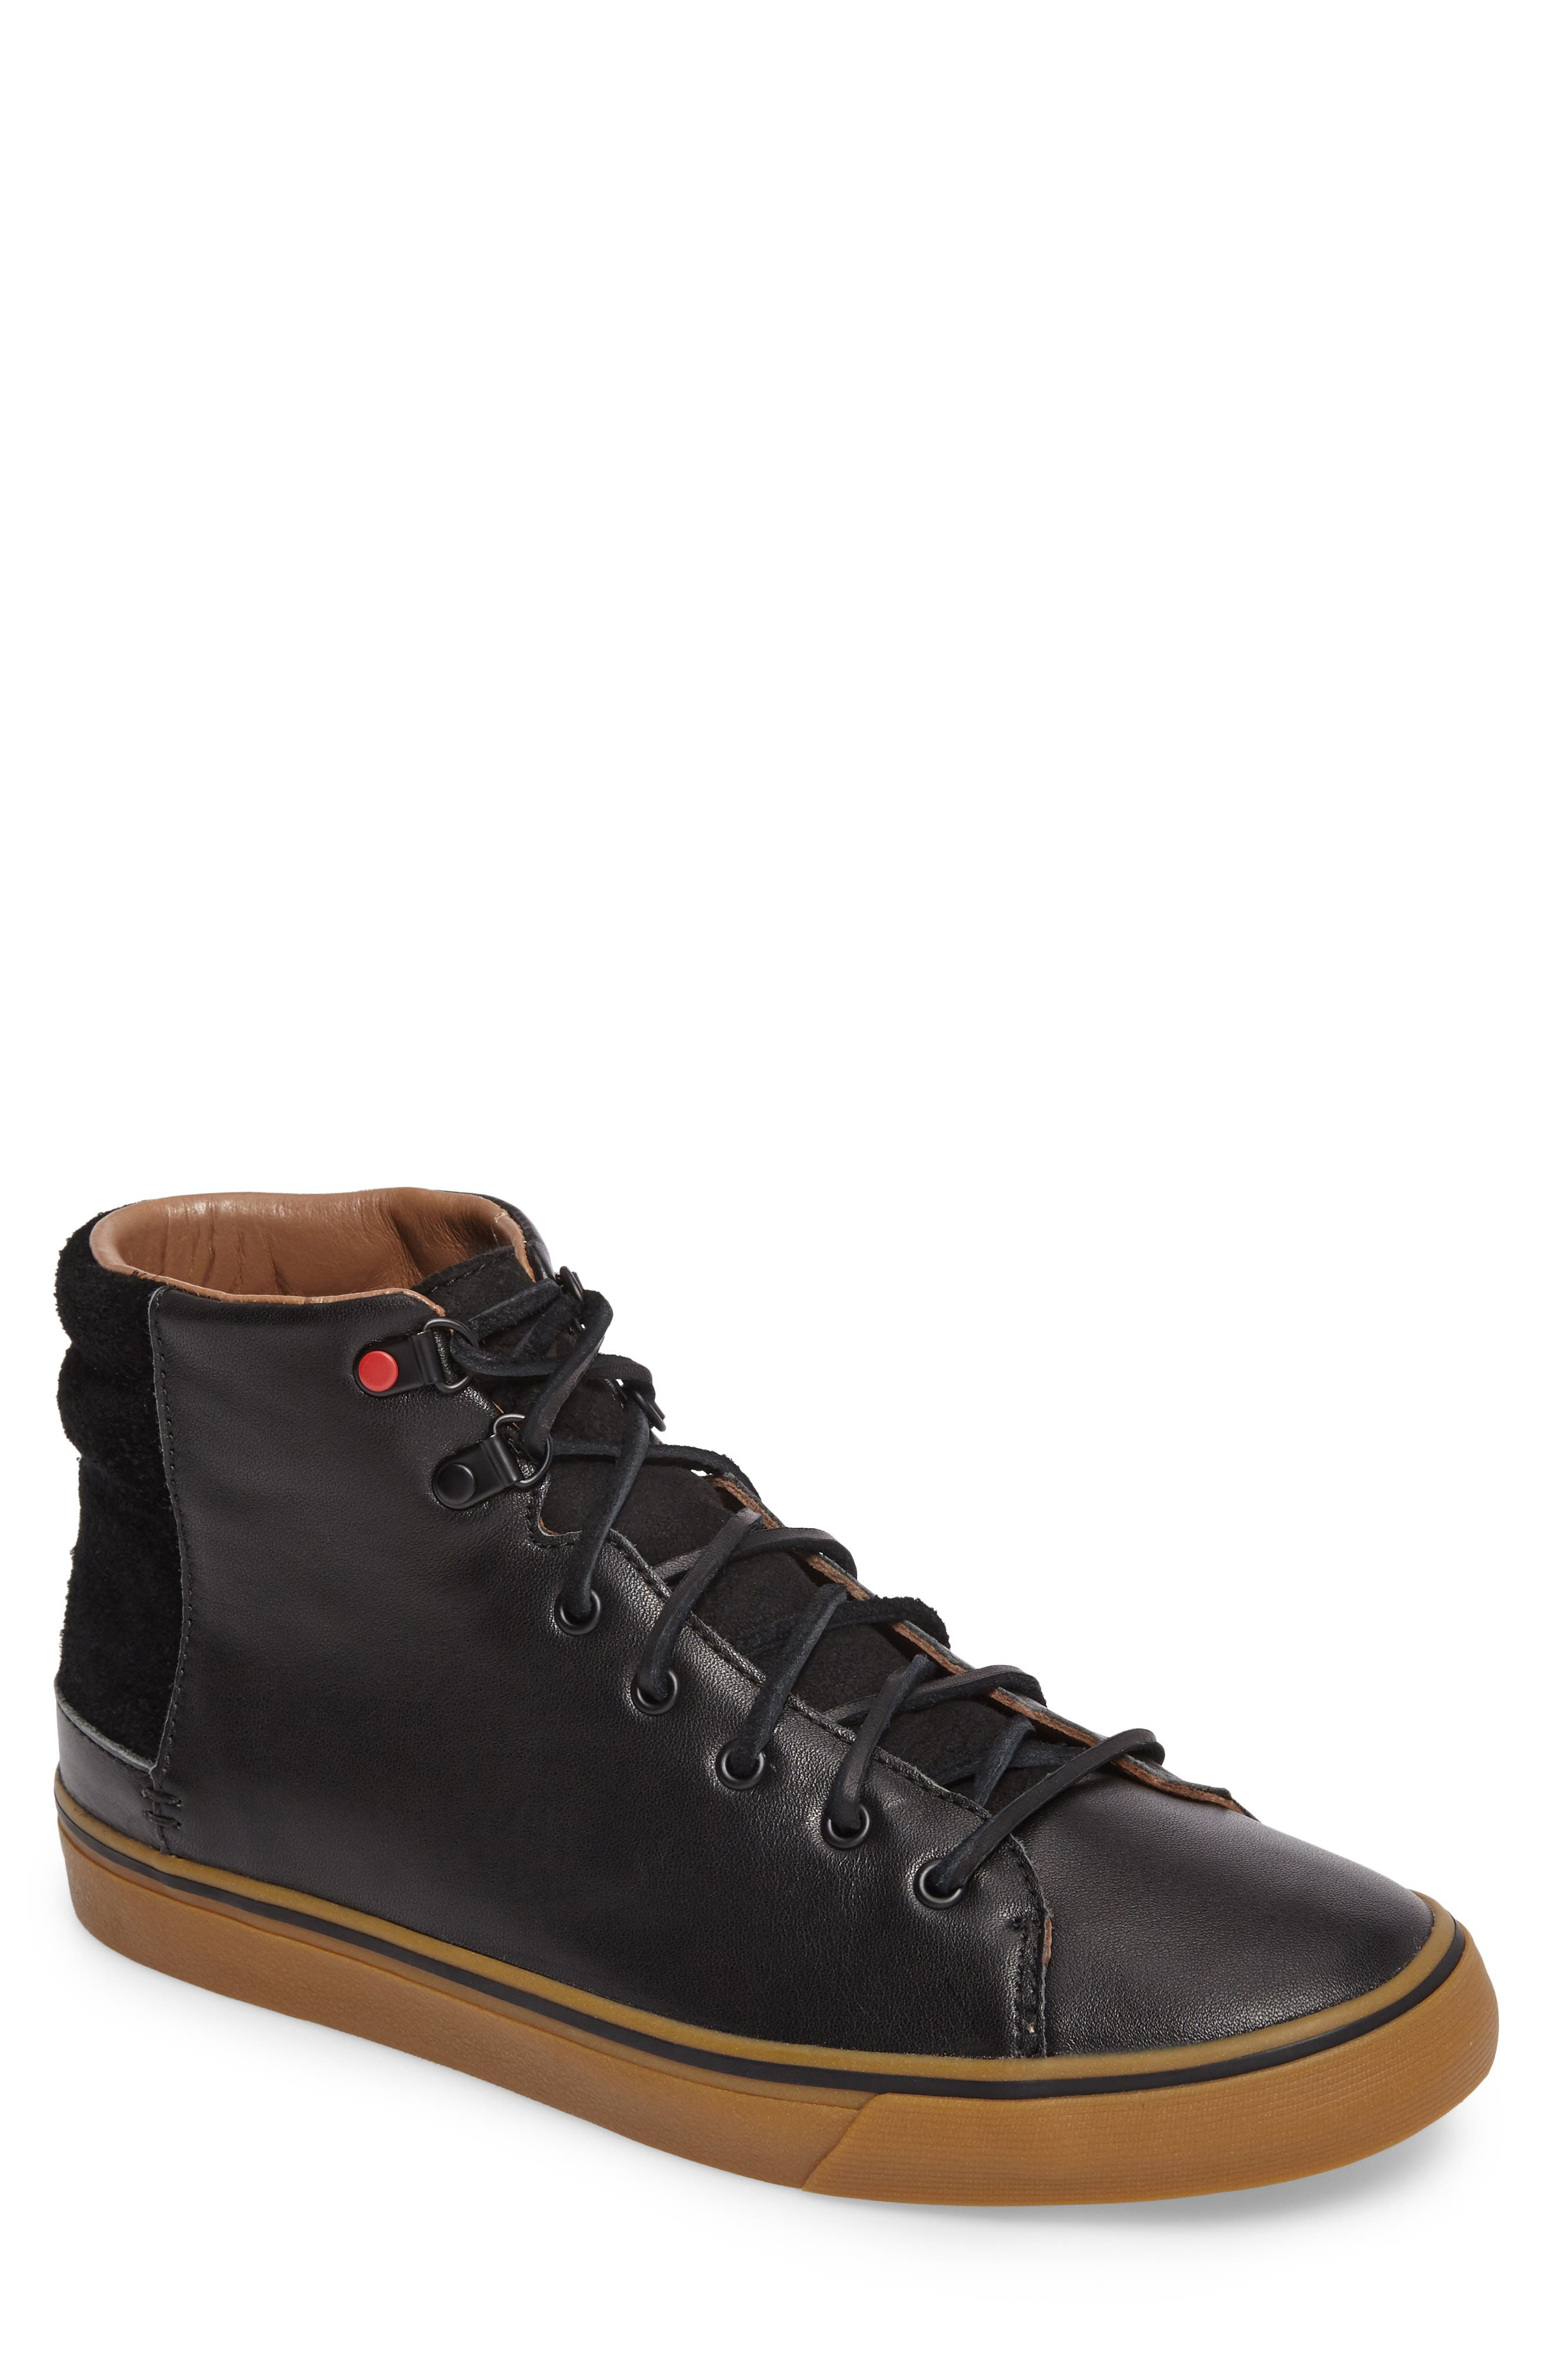 Hoyt Luxe Genuine Shearling High Top Sneaker,                             Main thumbnail 1, color,                             001